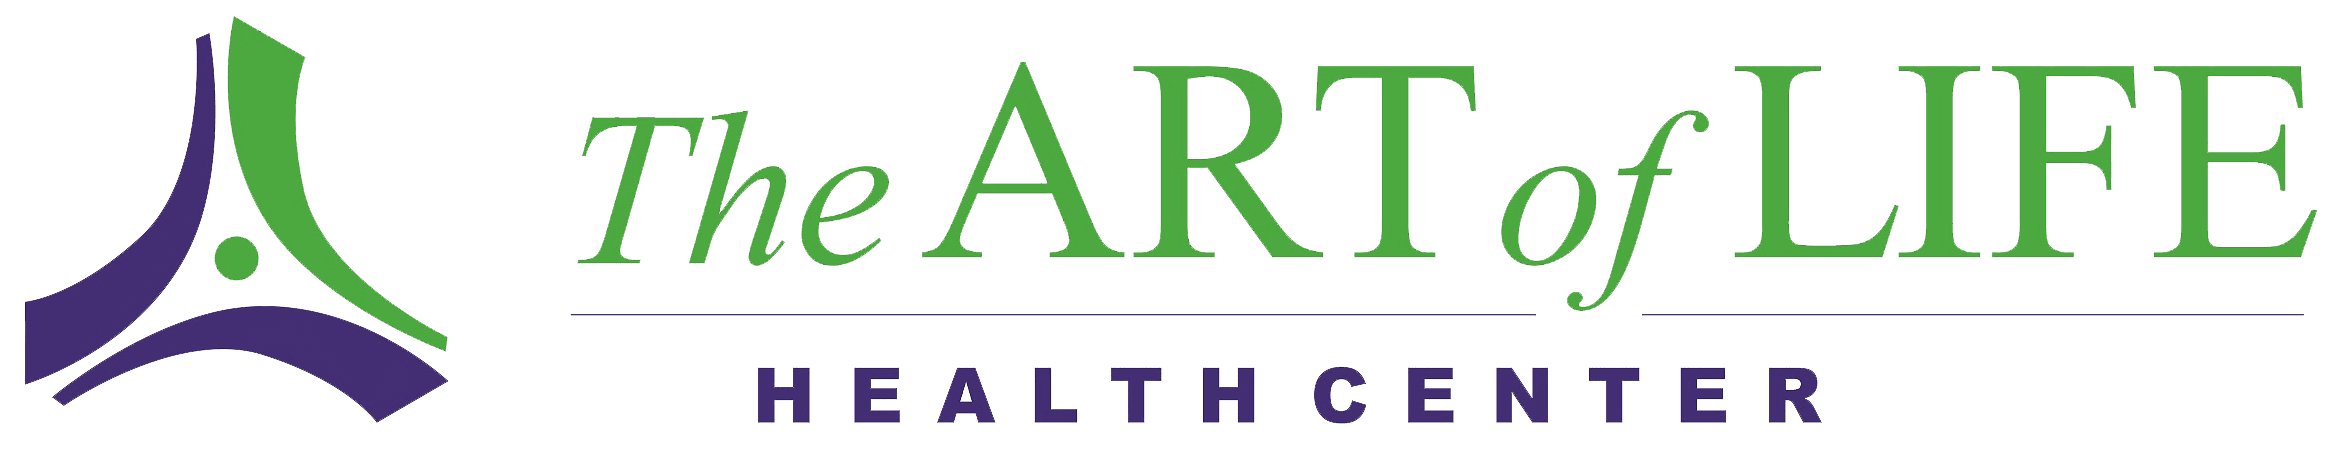 The Art of Life - Health Center